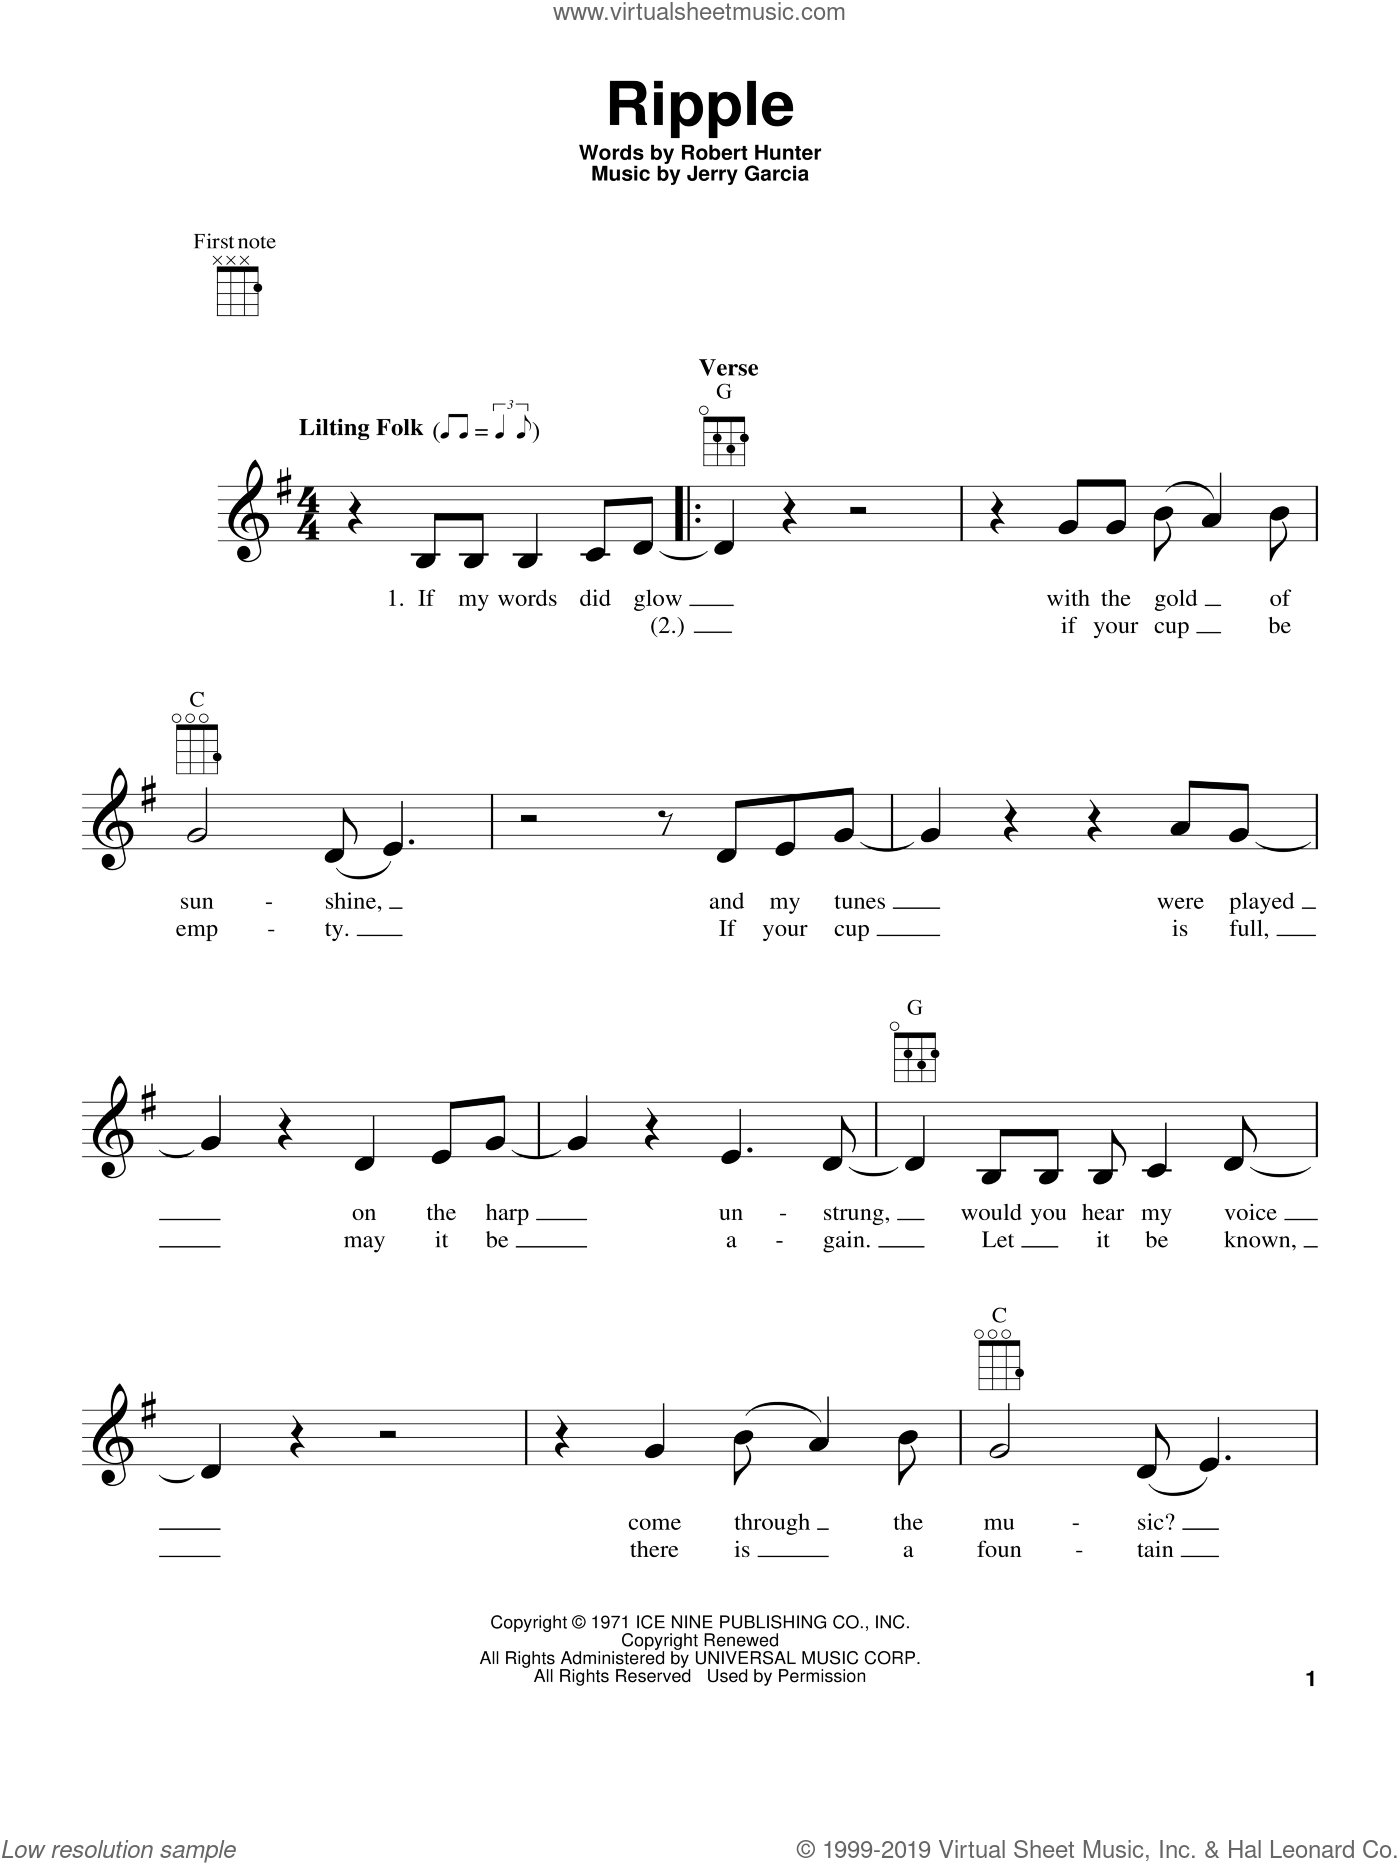 Ripple sheet music for ukulele by Grateful Dead, Jerry Garcia and Robert Hunter, intermediate skill level